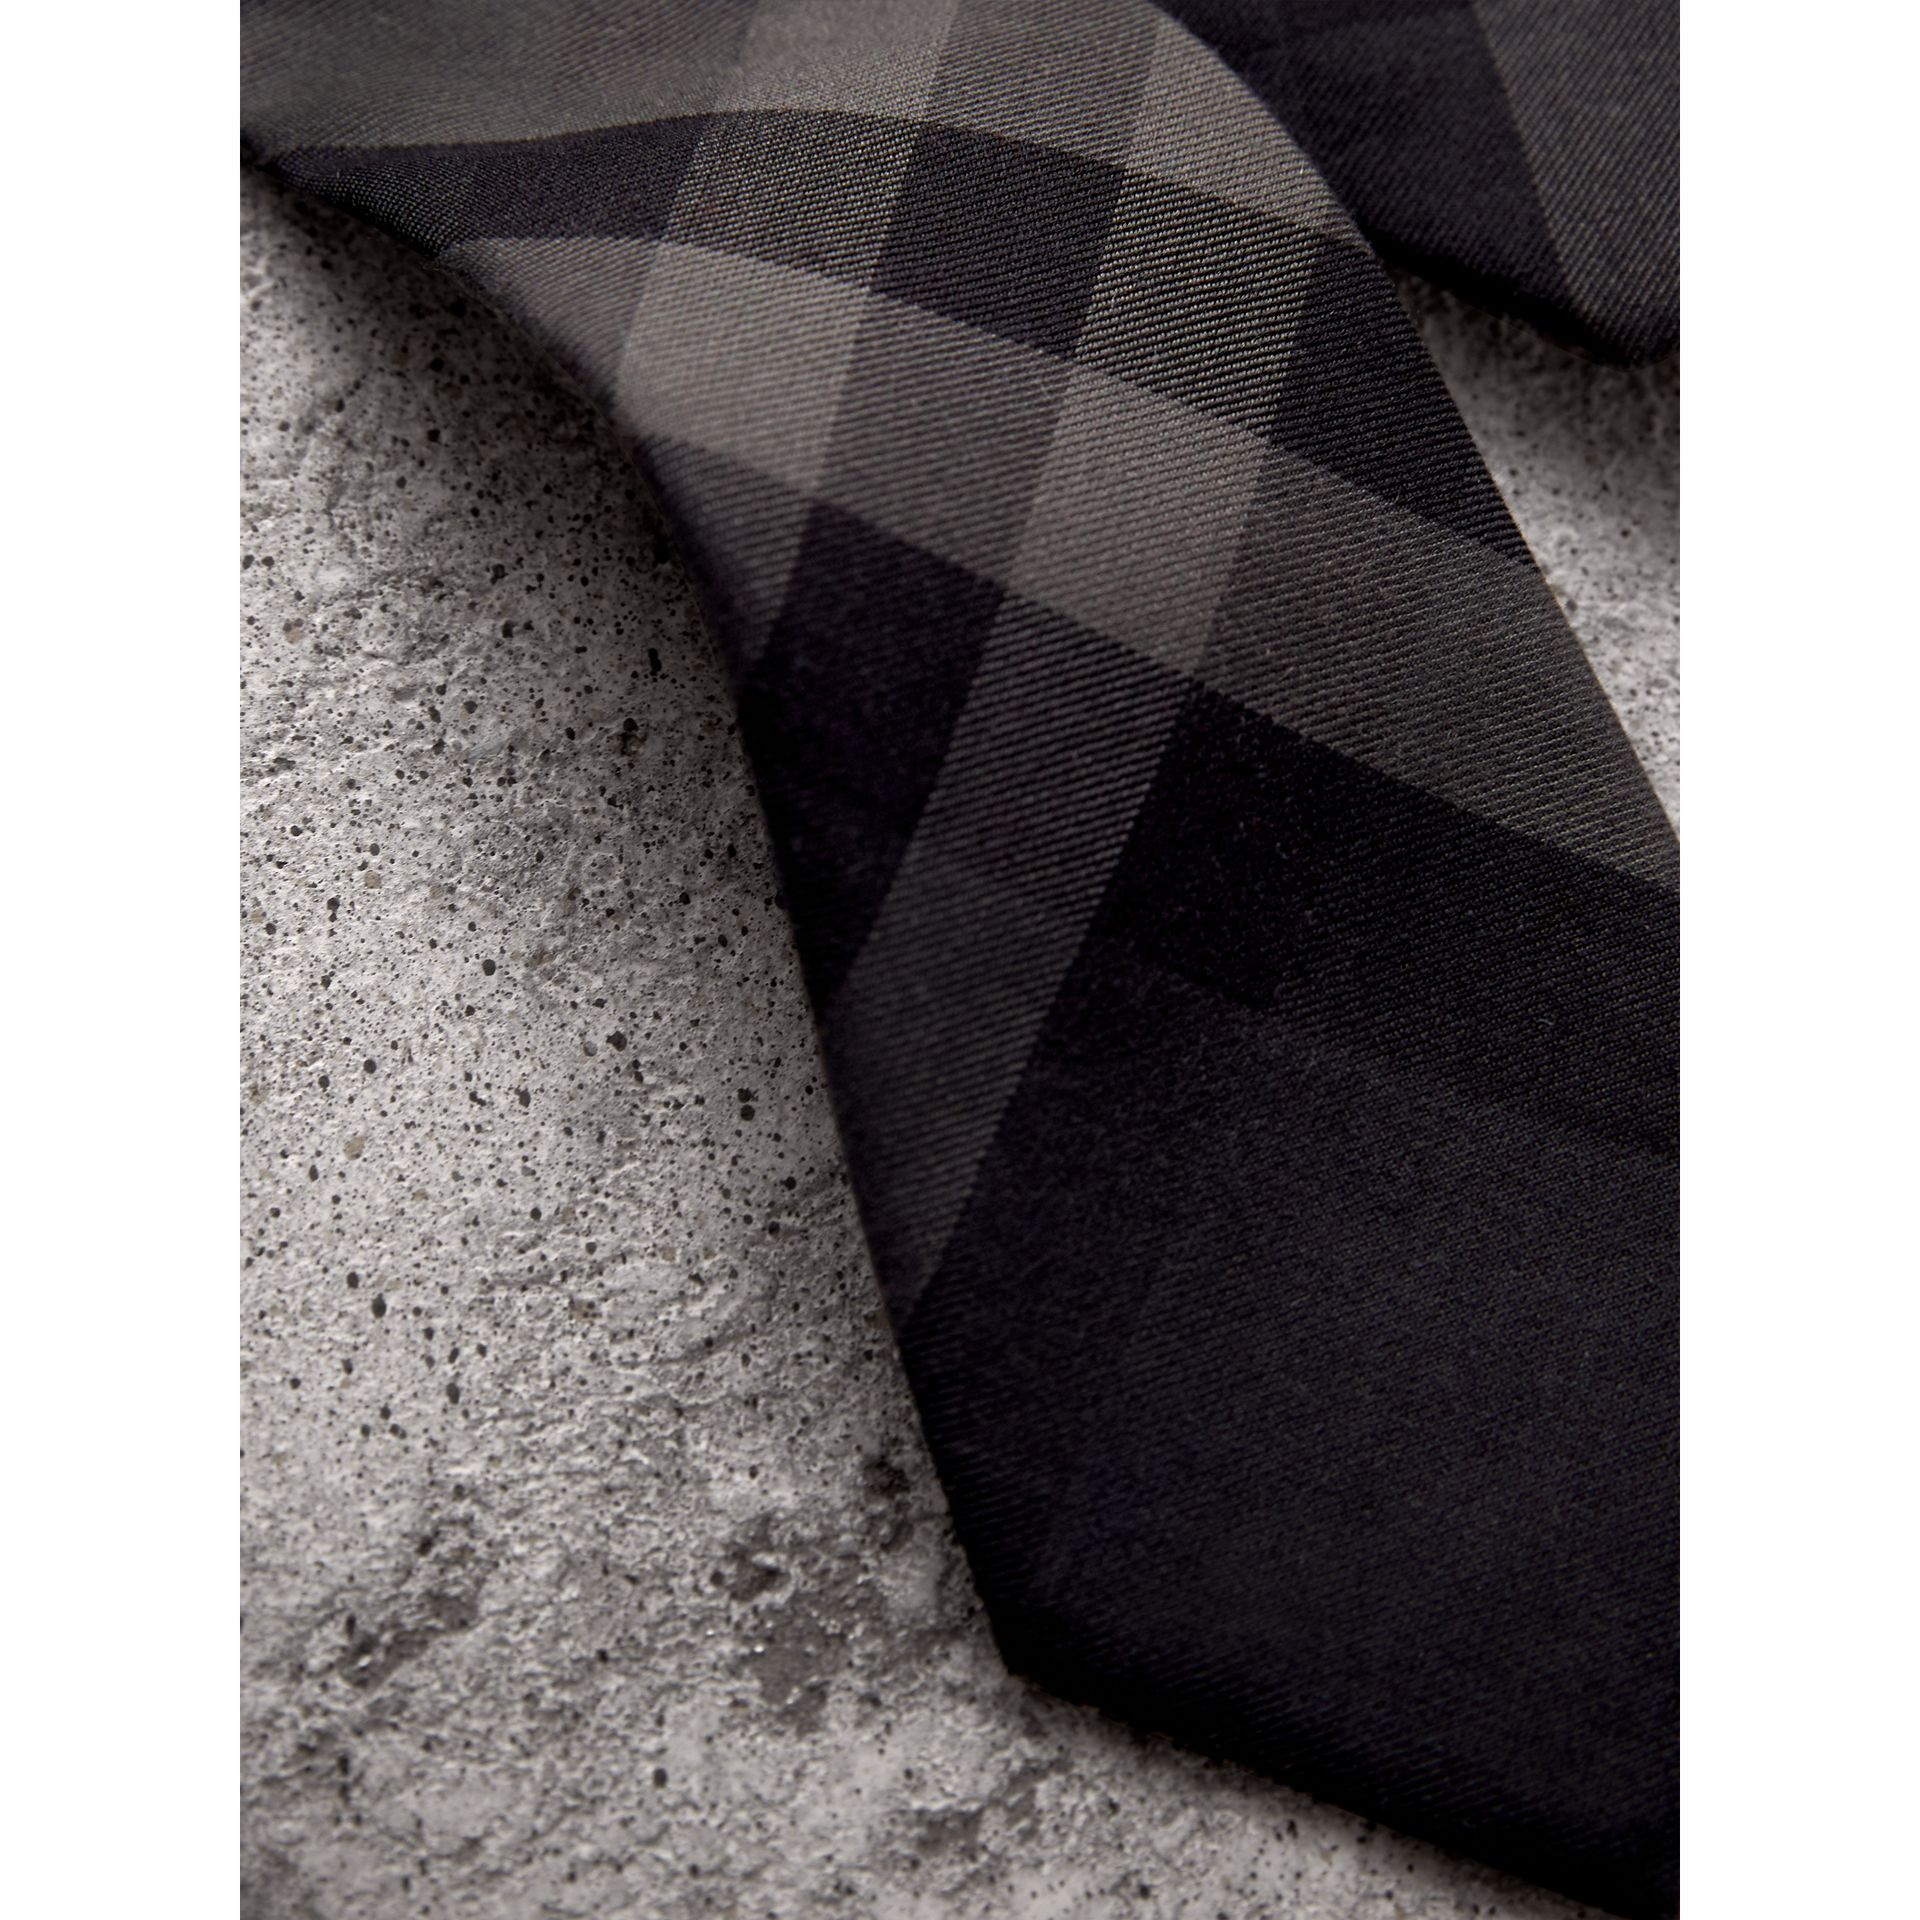 Modern Cut Check Cotton Cashmere Tie in Charcoal - Men | Burberry United Kingdom - gallery image 1